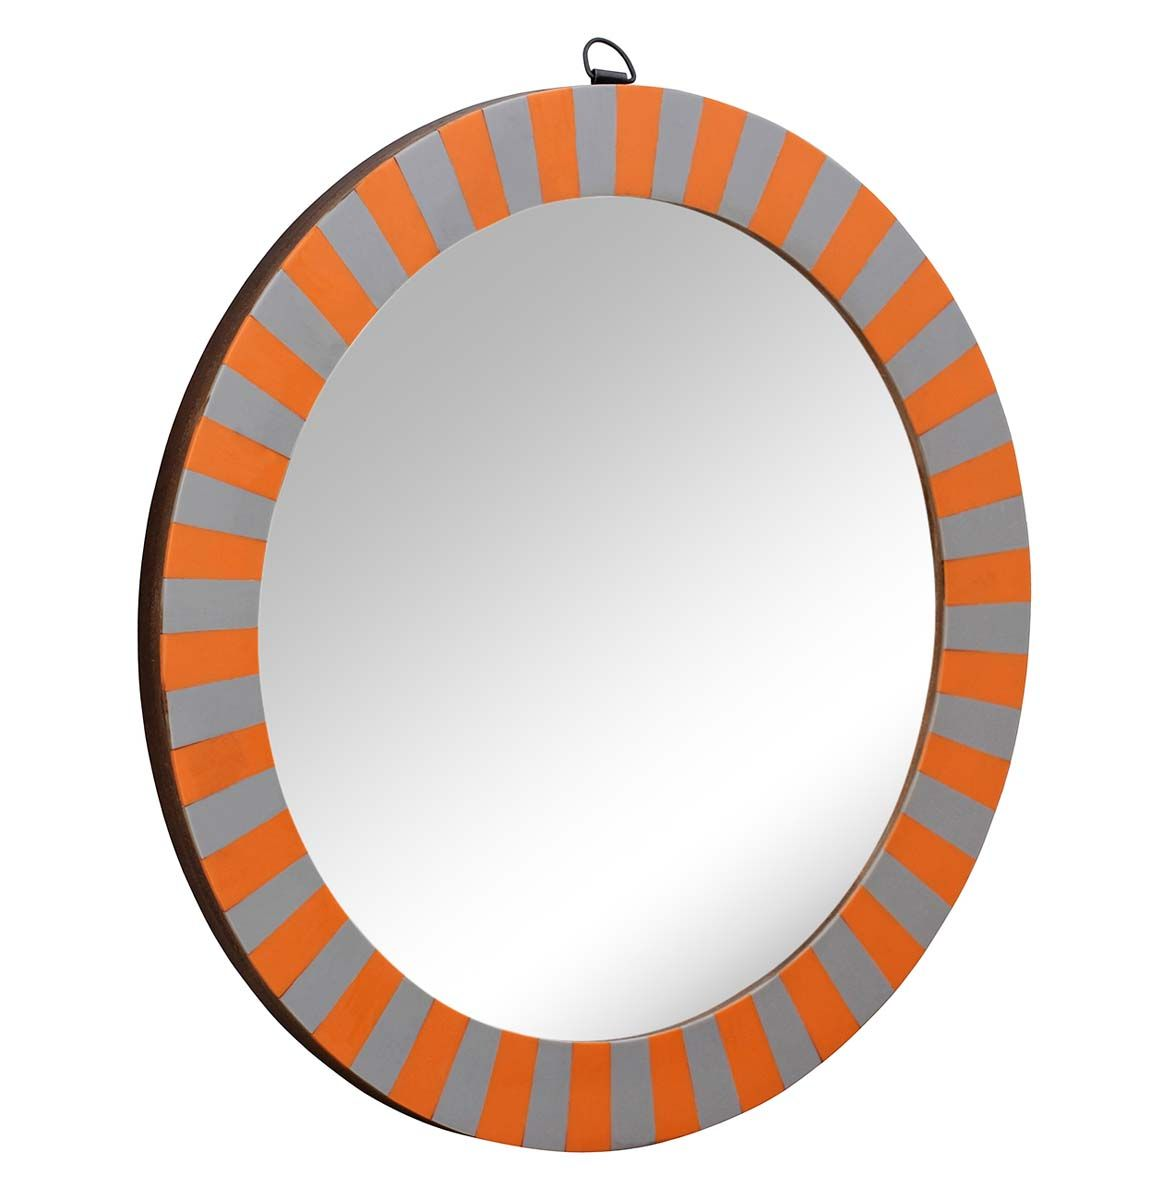 Wholesale 144 wall mirror in bulk handmade orange and grey wholesale 144 wall mirror in bulk handmade orange and grey striped pattern wall mounted amipublicfo Choice Image